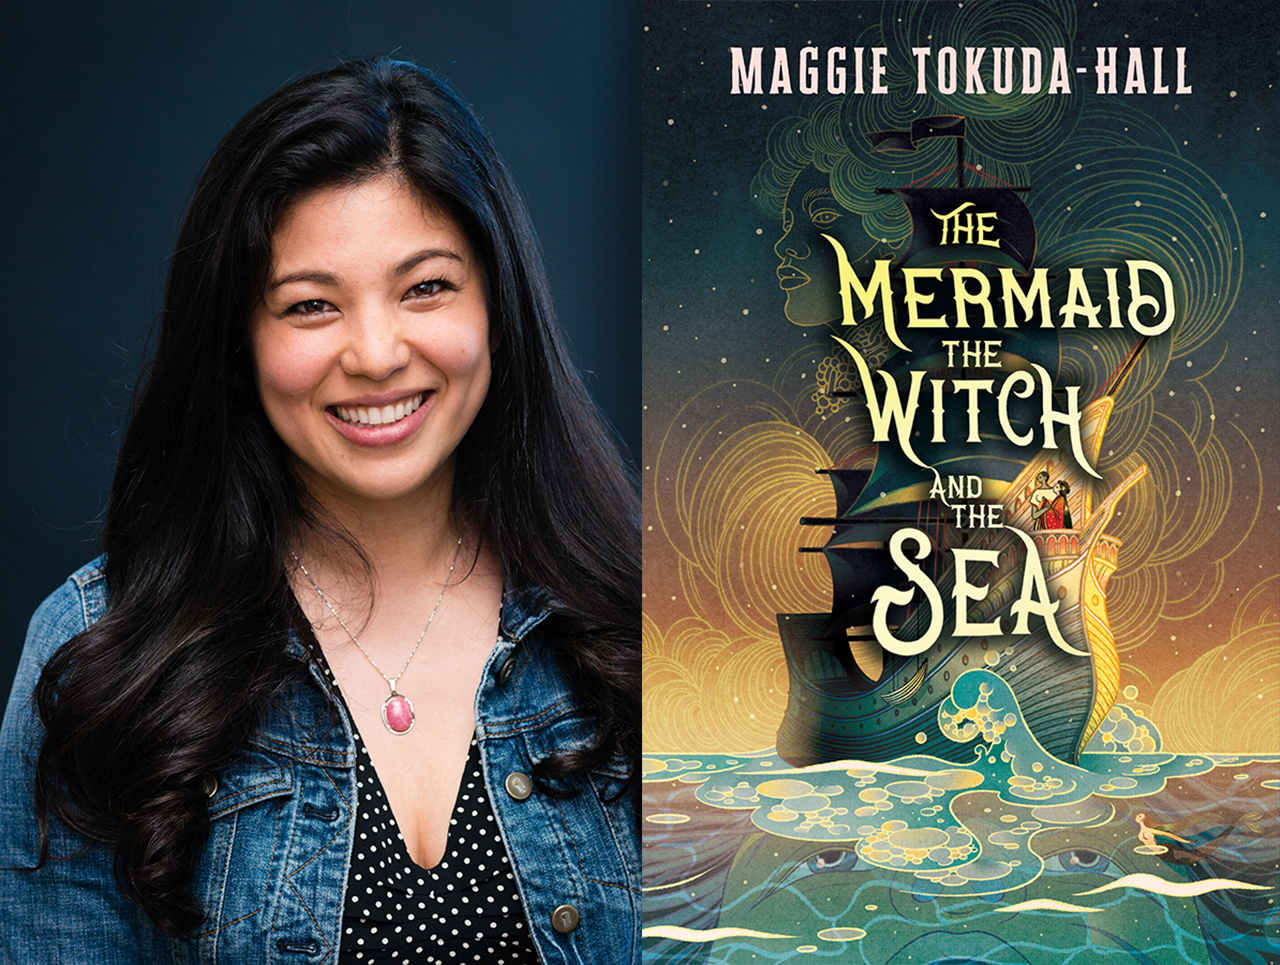 Two images. Left: Photo of a smiling woman with East Asian features in a denim jacket. Right: cover art for her novel, which featues a lavish illustration of a sailing ship on a turbulent sea.